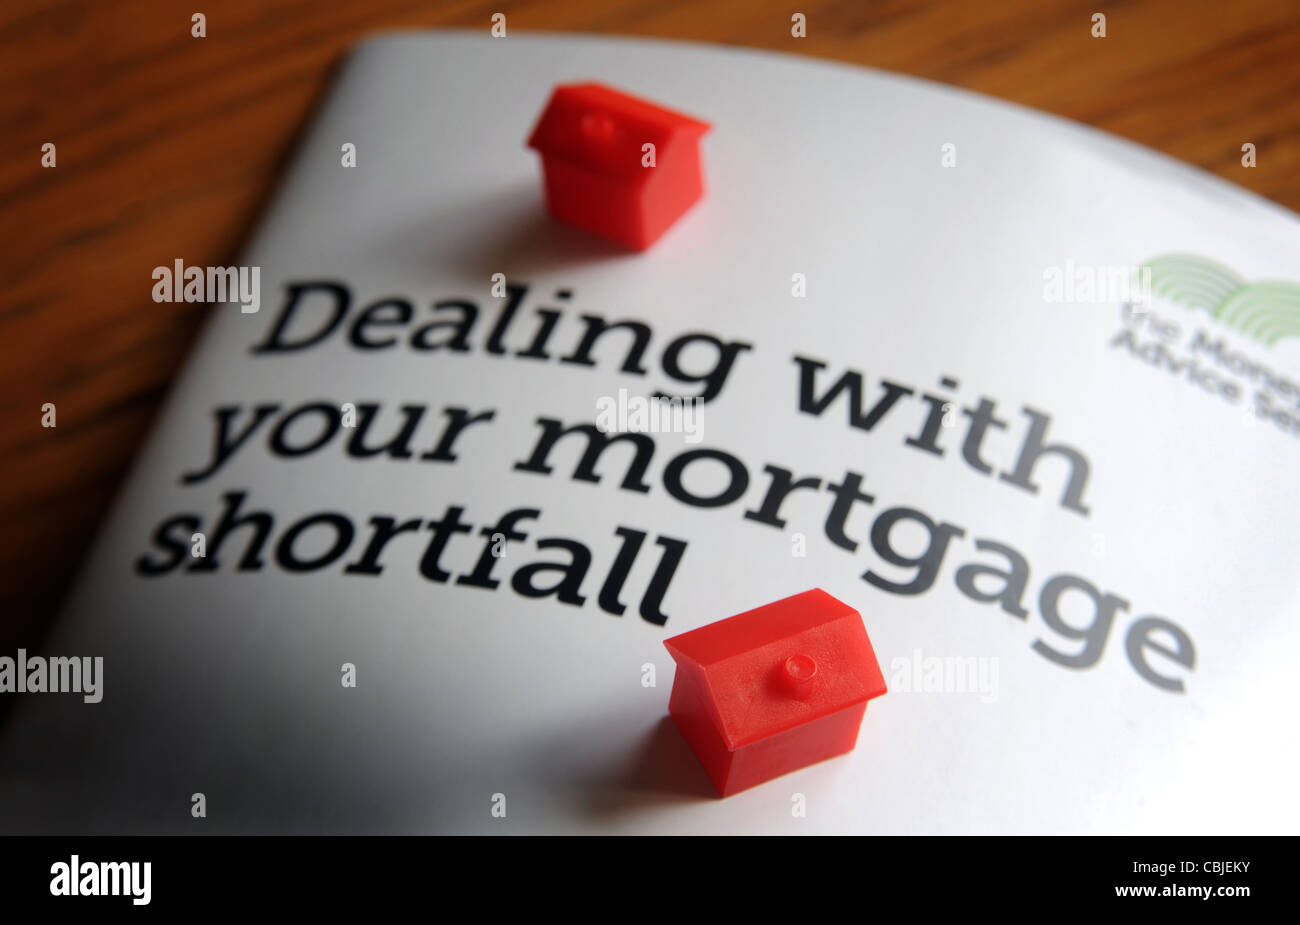 DEALING WITH YOUR MORTGAGE SHORTFALL INFO LEAFLET WITH MODEL HOUSES RE ENDOWMENT MORTGAGE SHORTFALL MORTGAGES NEGATIVE - Stock Image